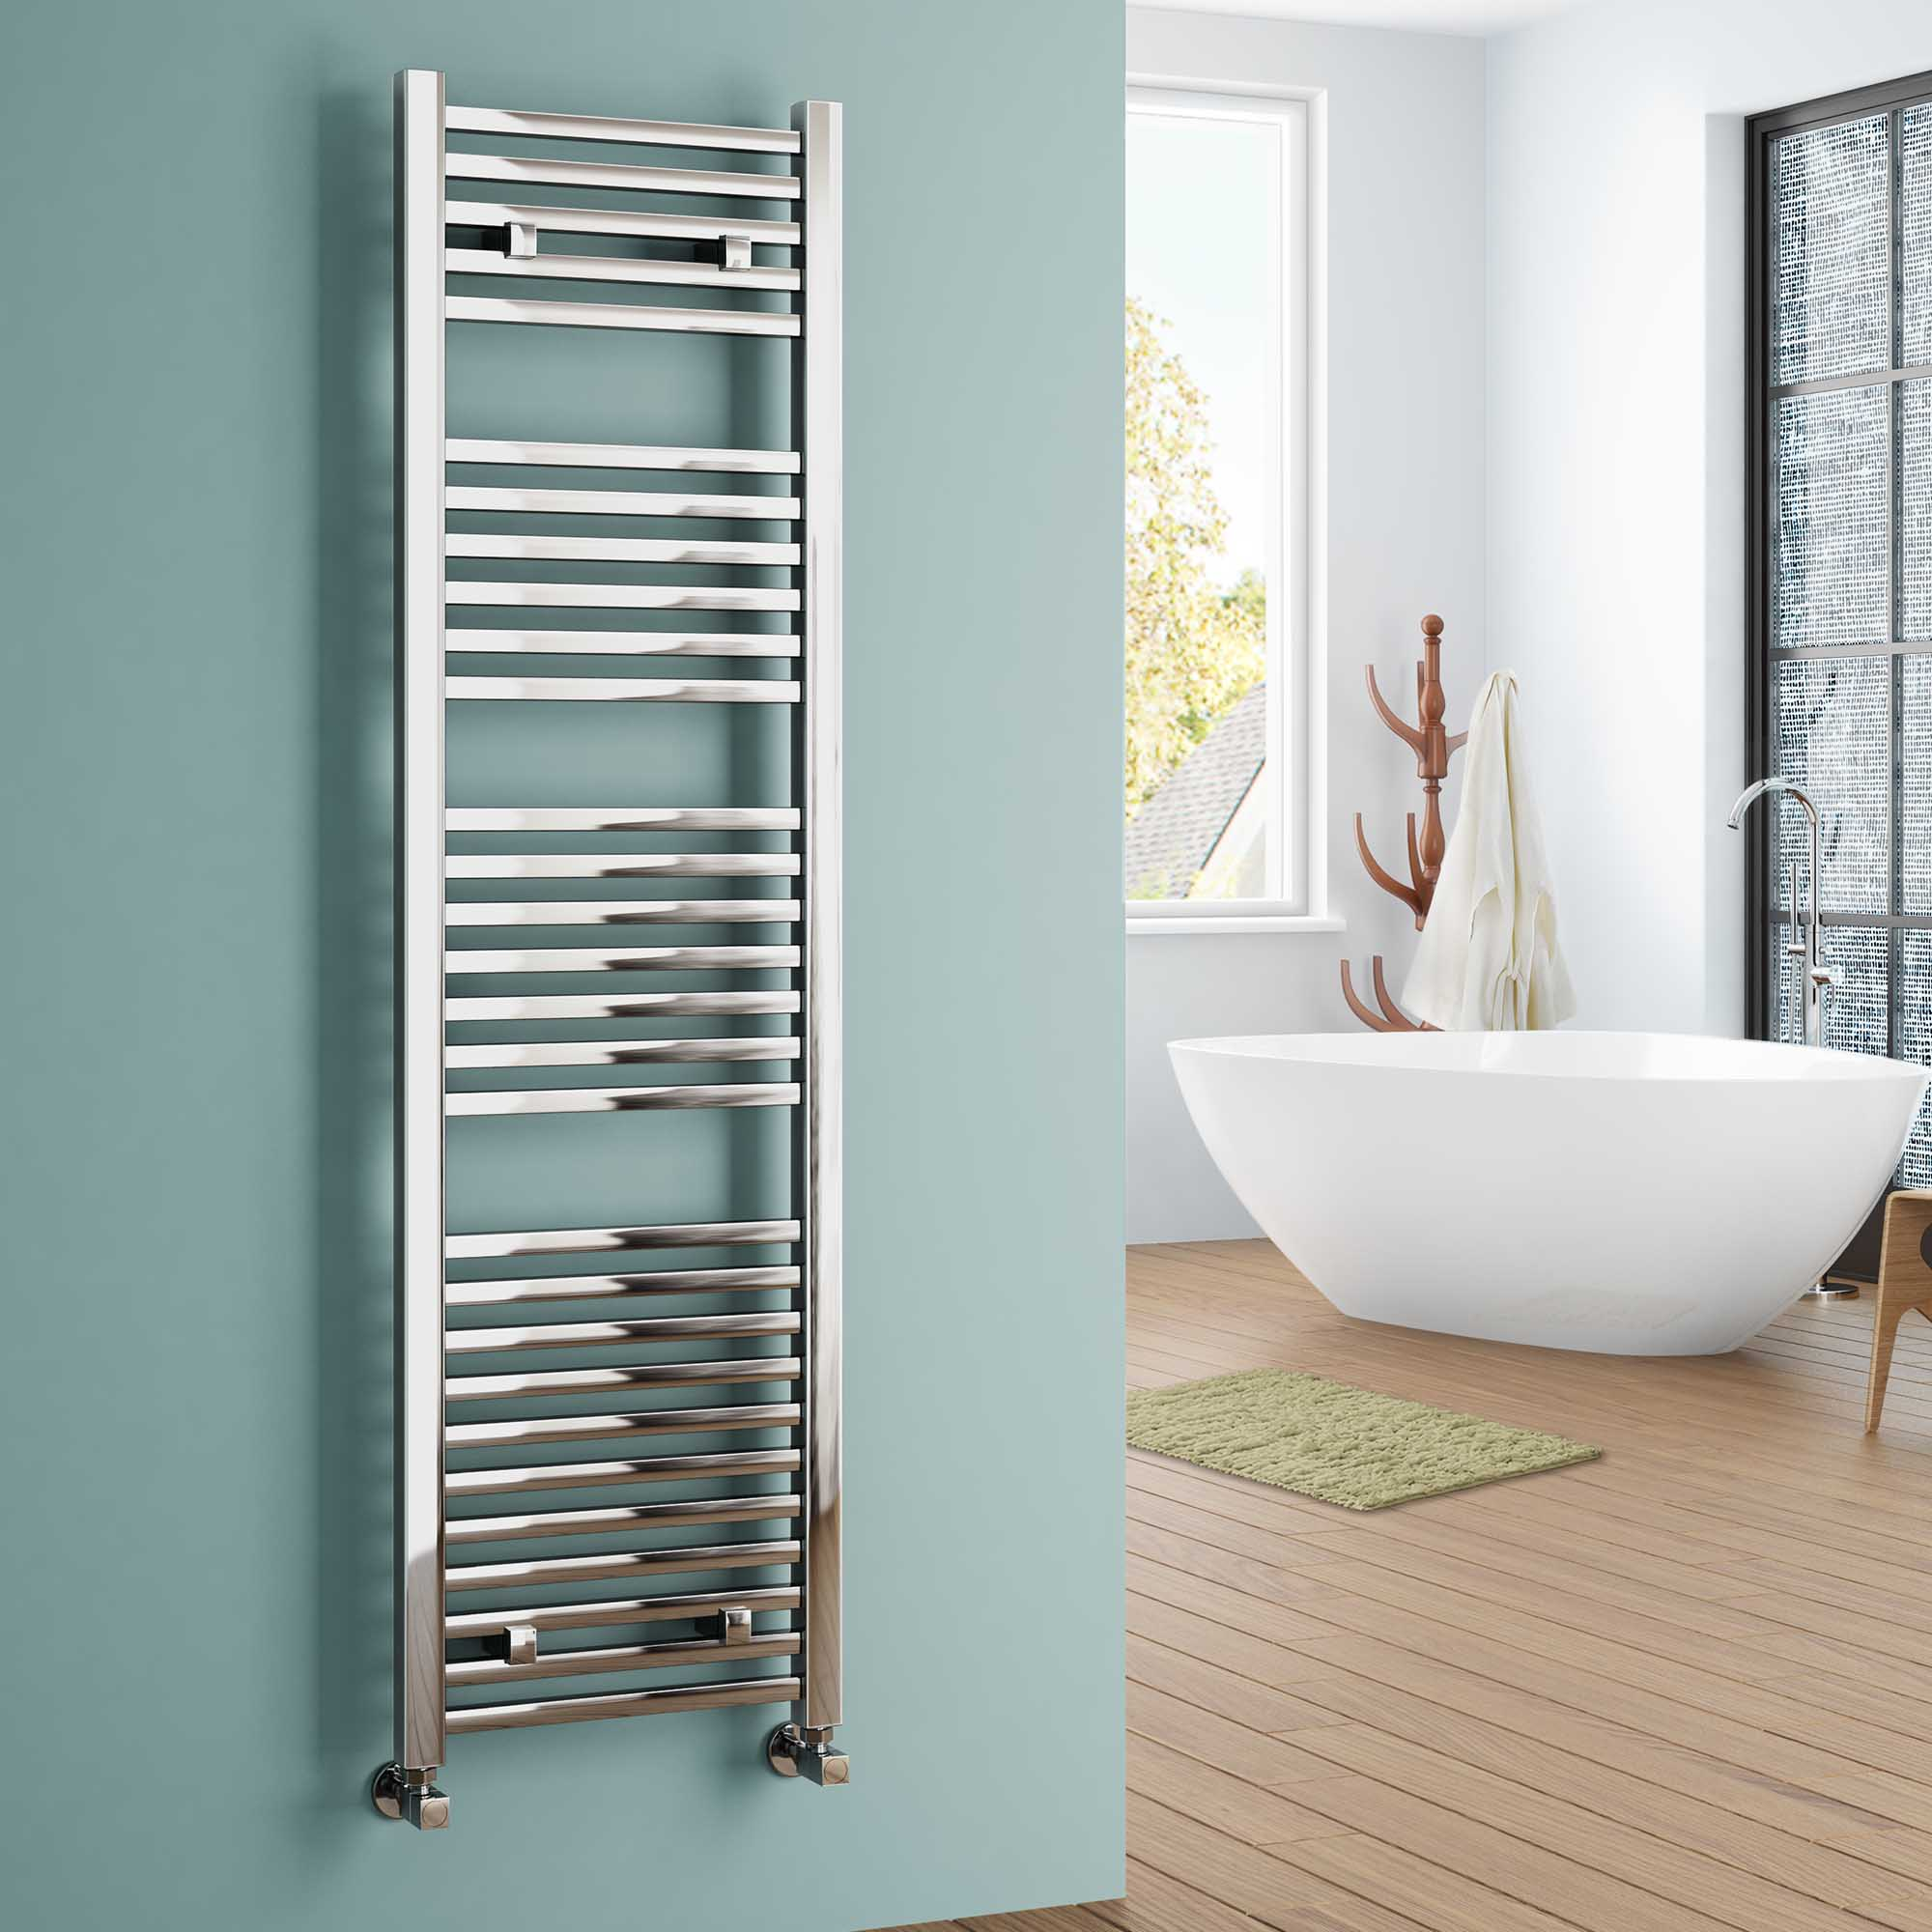 Only Synergy Chrome Designer Square Bathroom Ladder Rail Radiator Vip